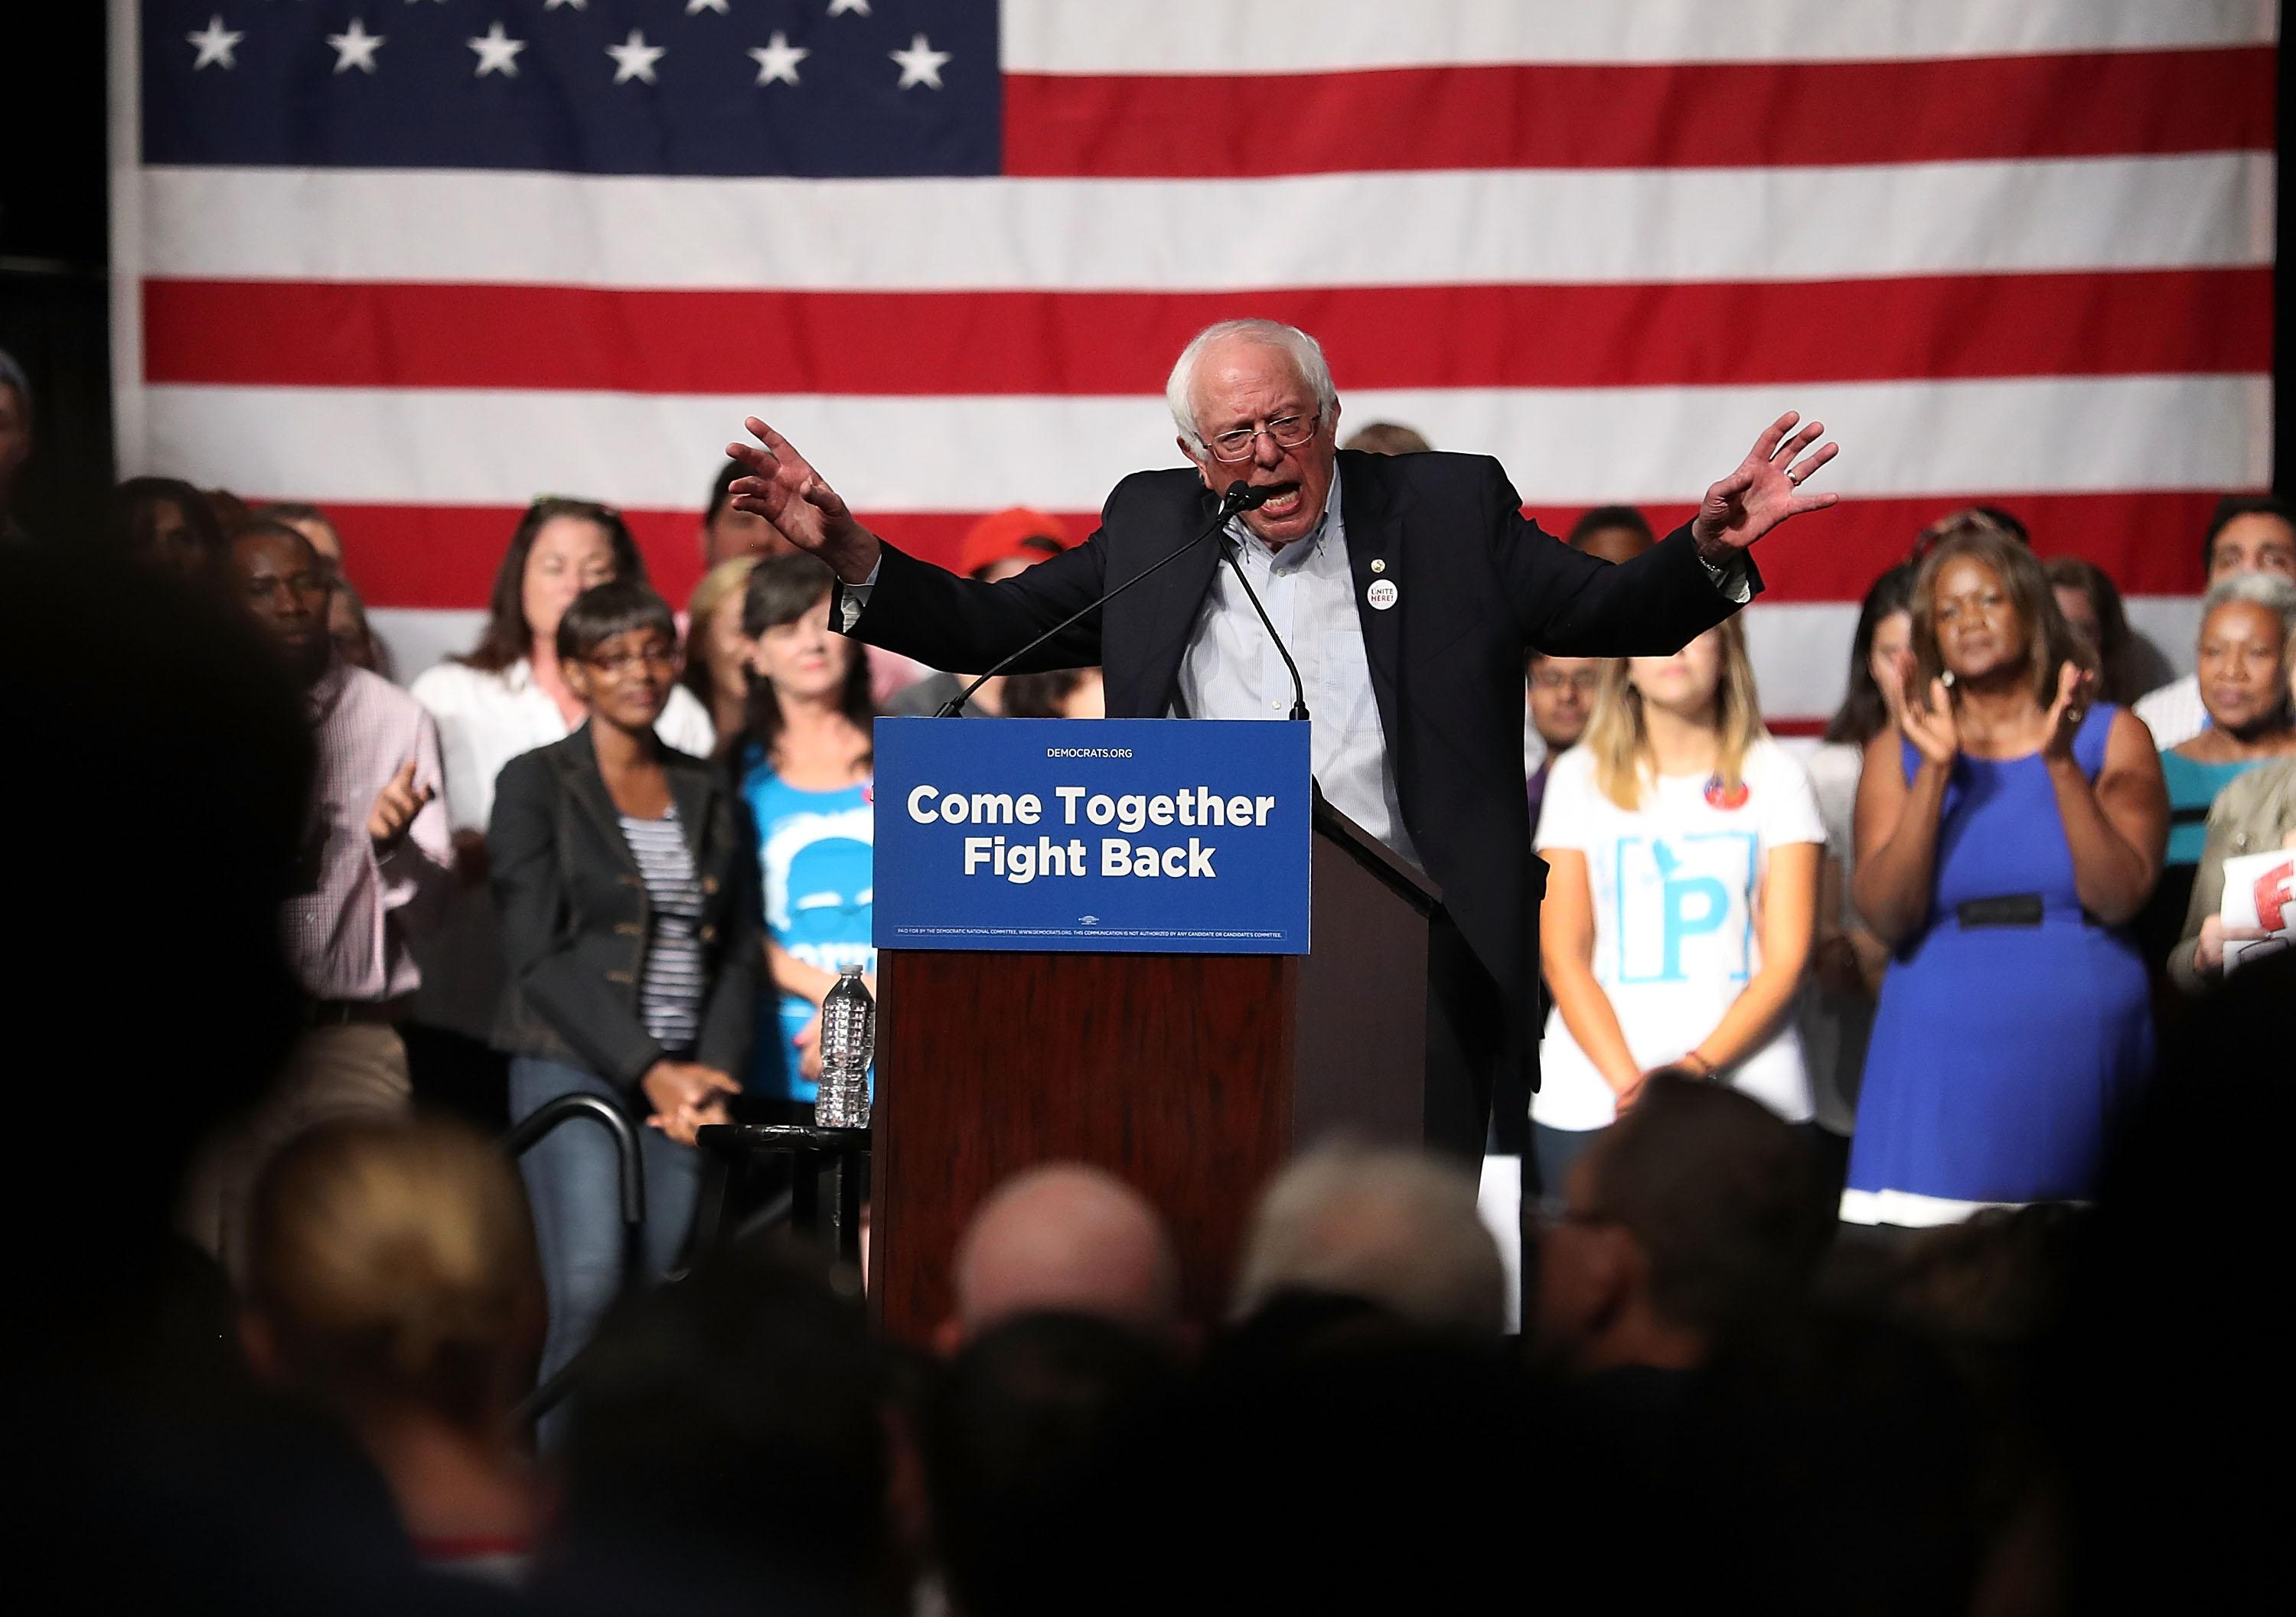 Women's Convention Gives Opening Speech Slot To … Bernie Sanders